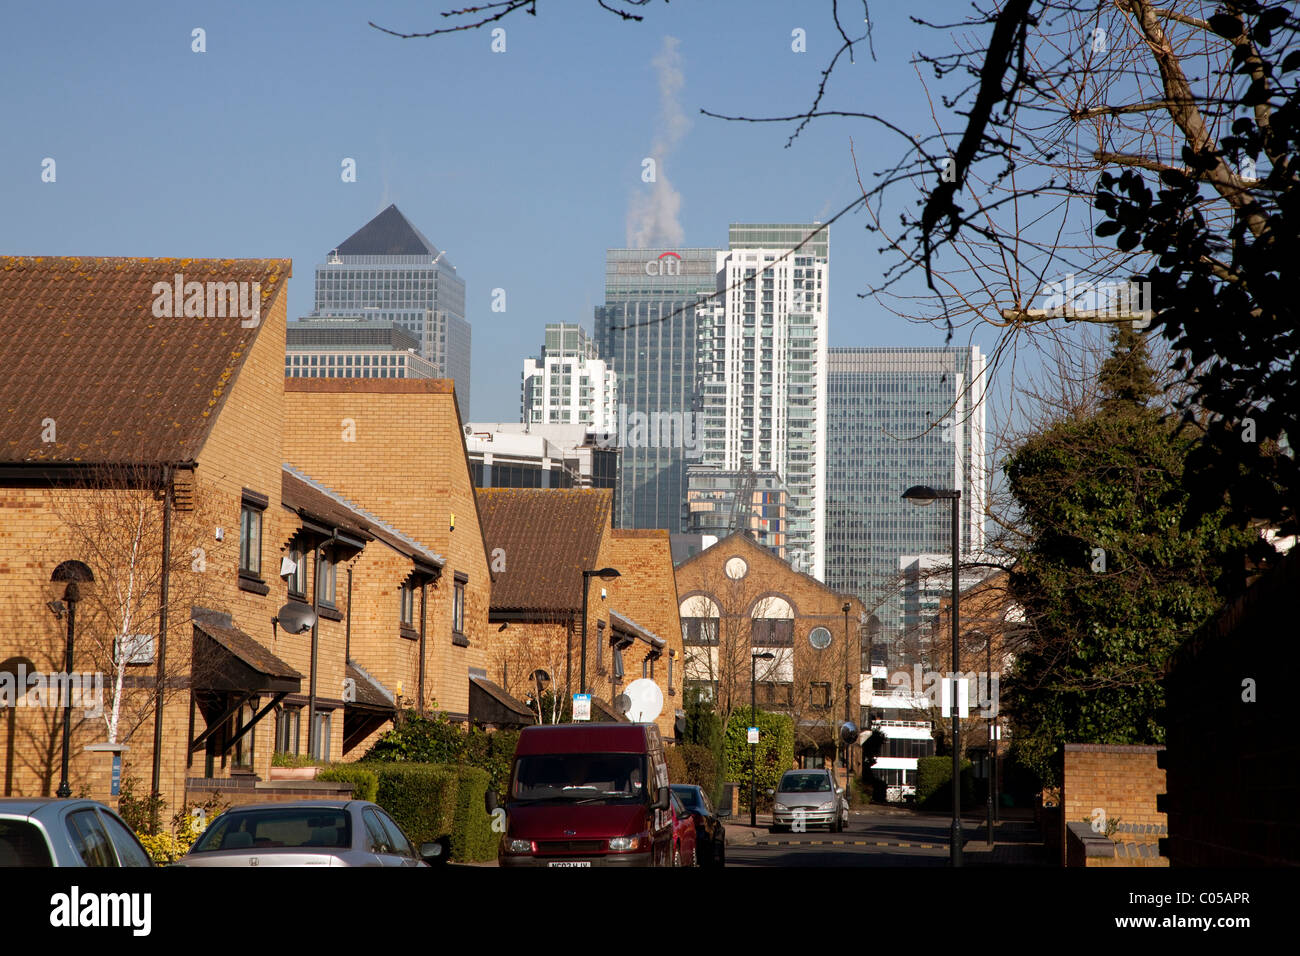 Canary Wharf seen from Mudchute, Isle of Dogs, London - Stock Image